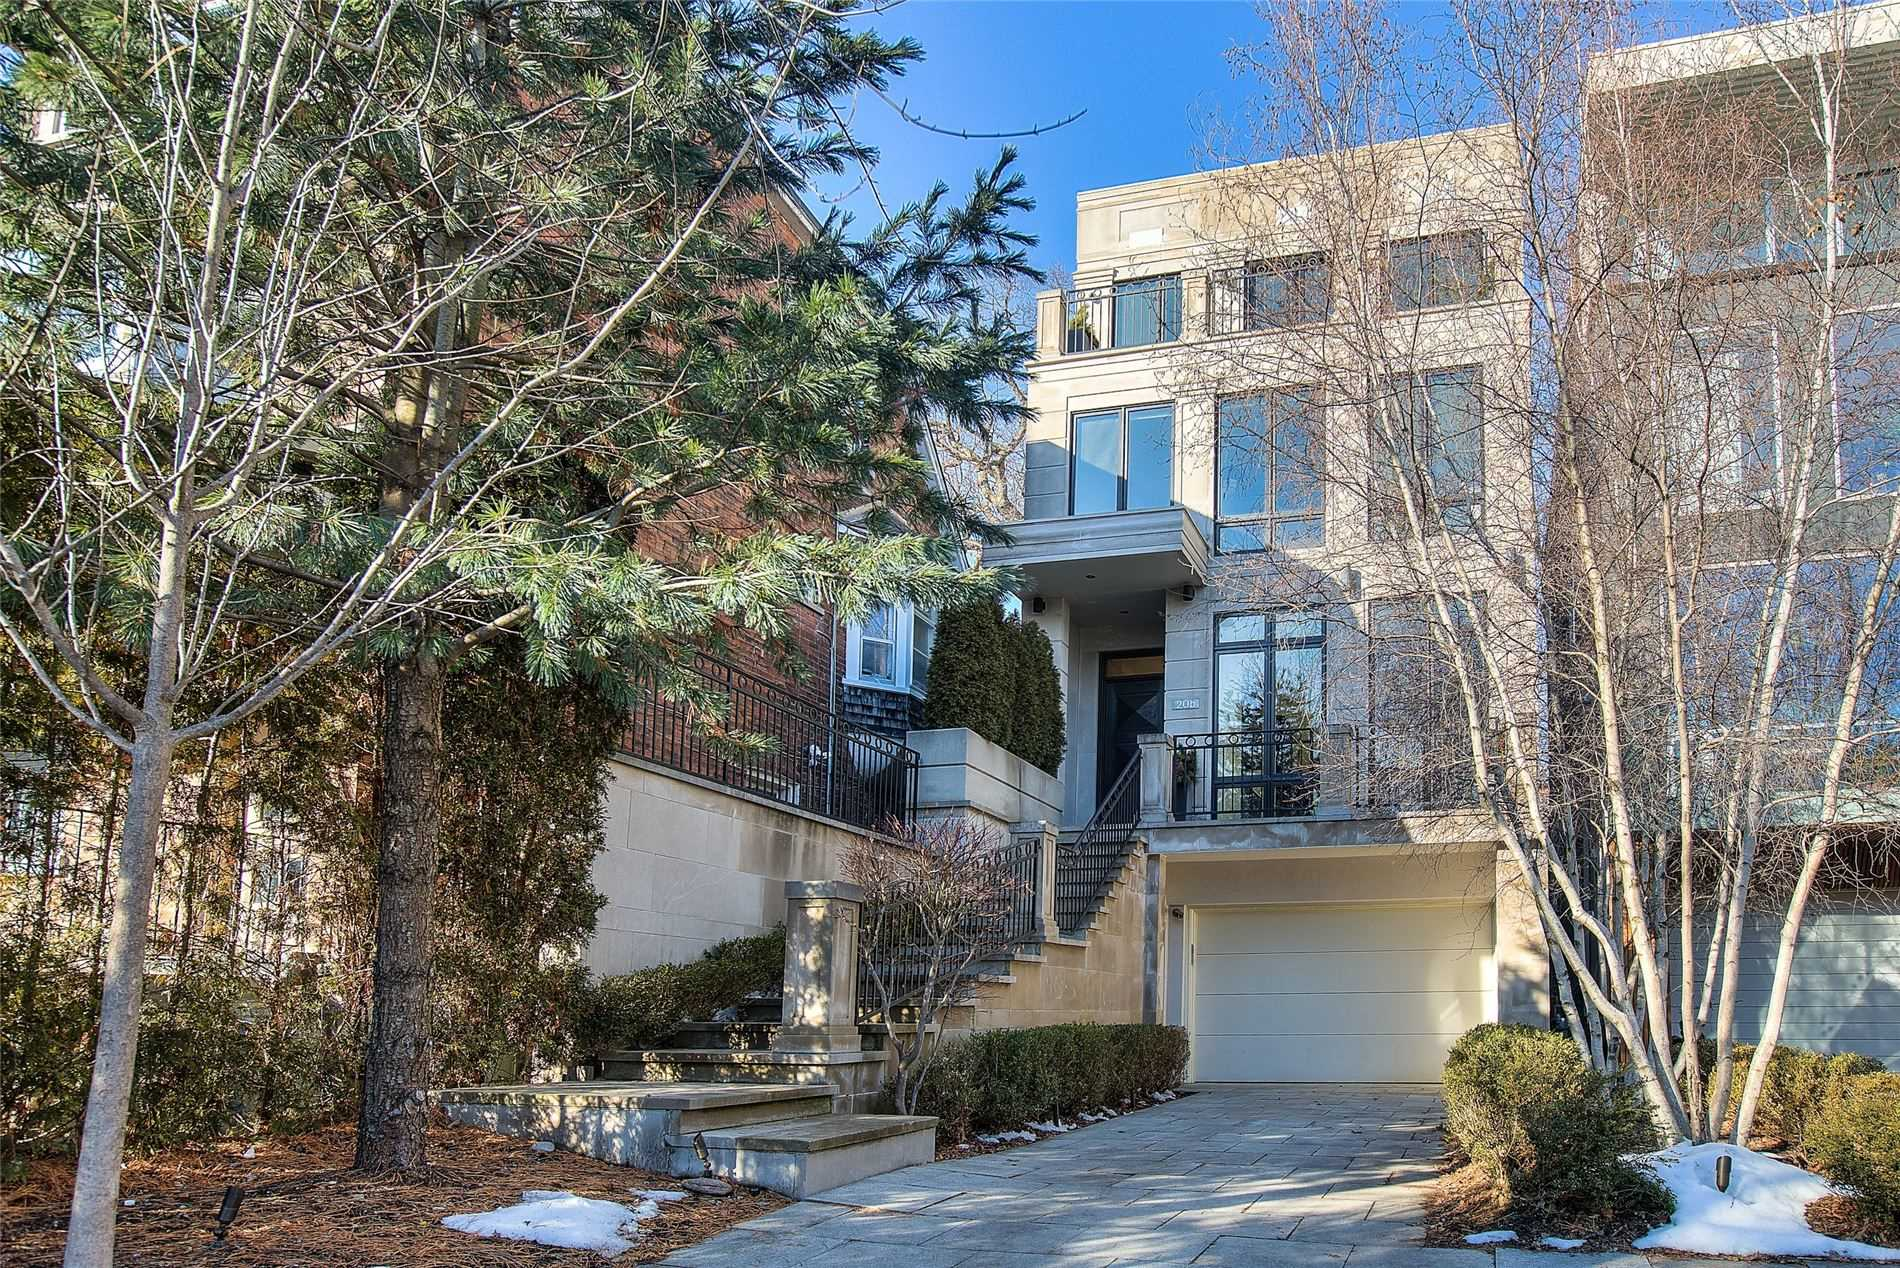 20B Woodlawn Ave, Toronto, Ontario M4V 1G7, 3 Bedrooms Bedrooms, 9 Rooms Rooms,5 BathroomsBathrooms,Detached,For Sale,Woodlawn,C5082850